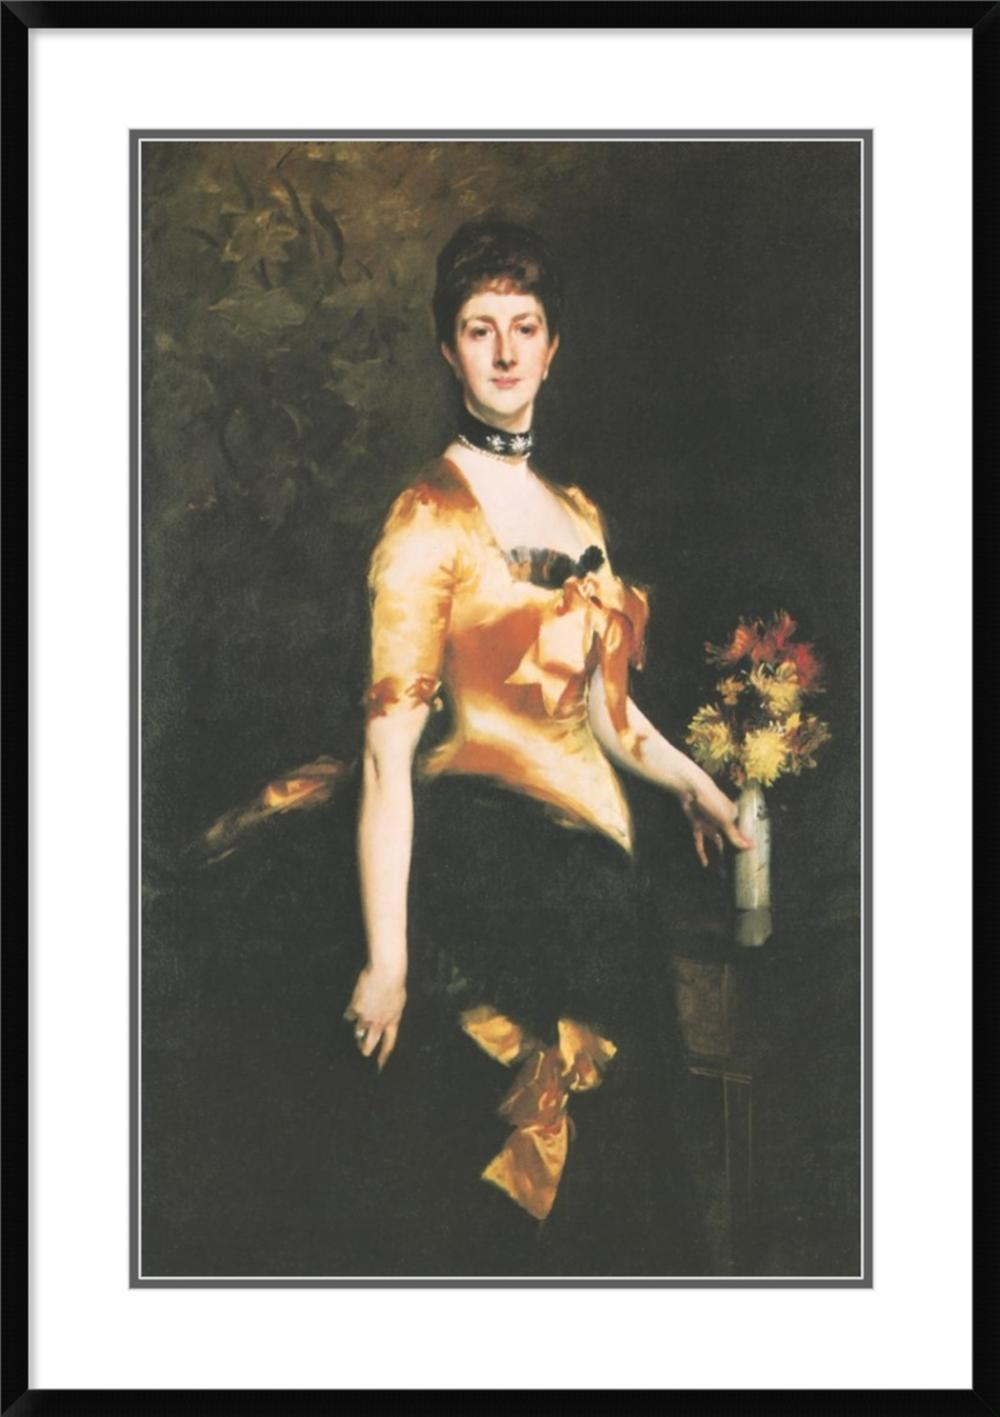 JOHN SINGER SARGENT - EDITH LADY PLAYFAIR, NéE EDITH RUSSELL, 1884